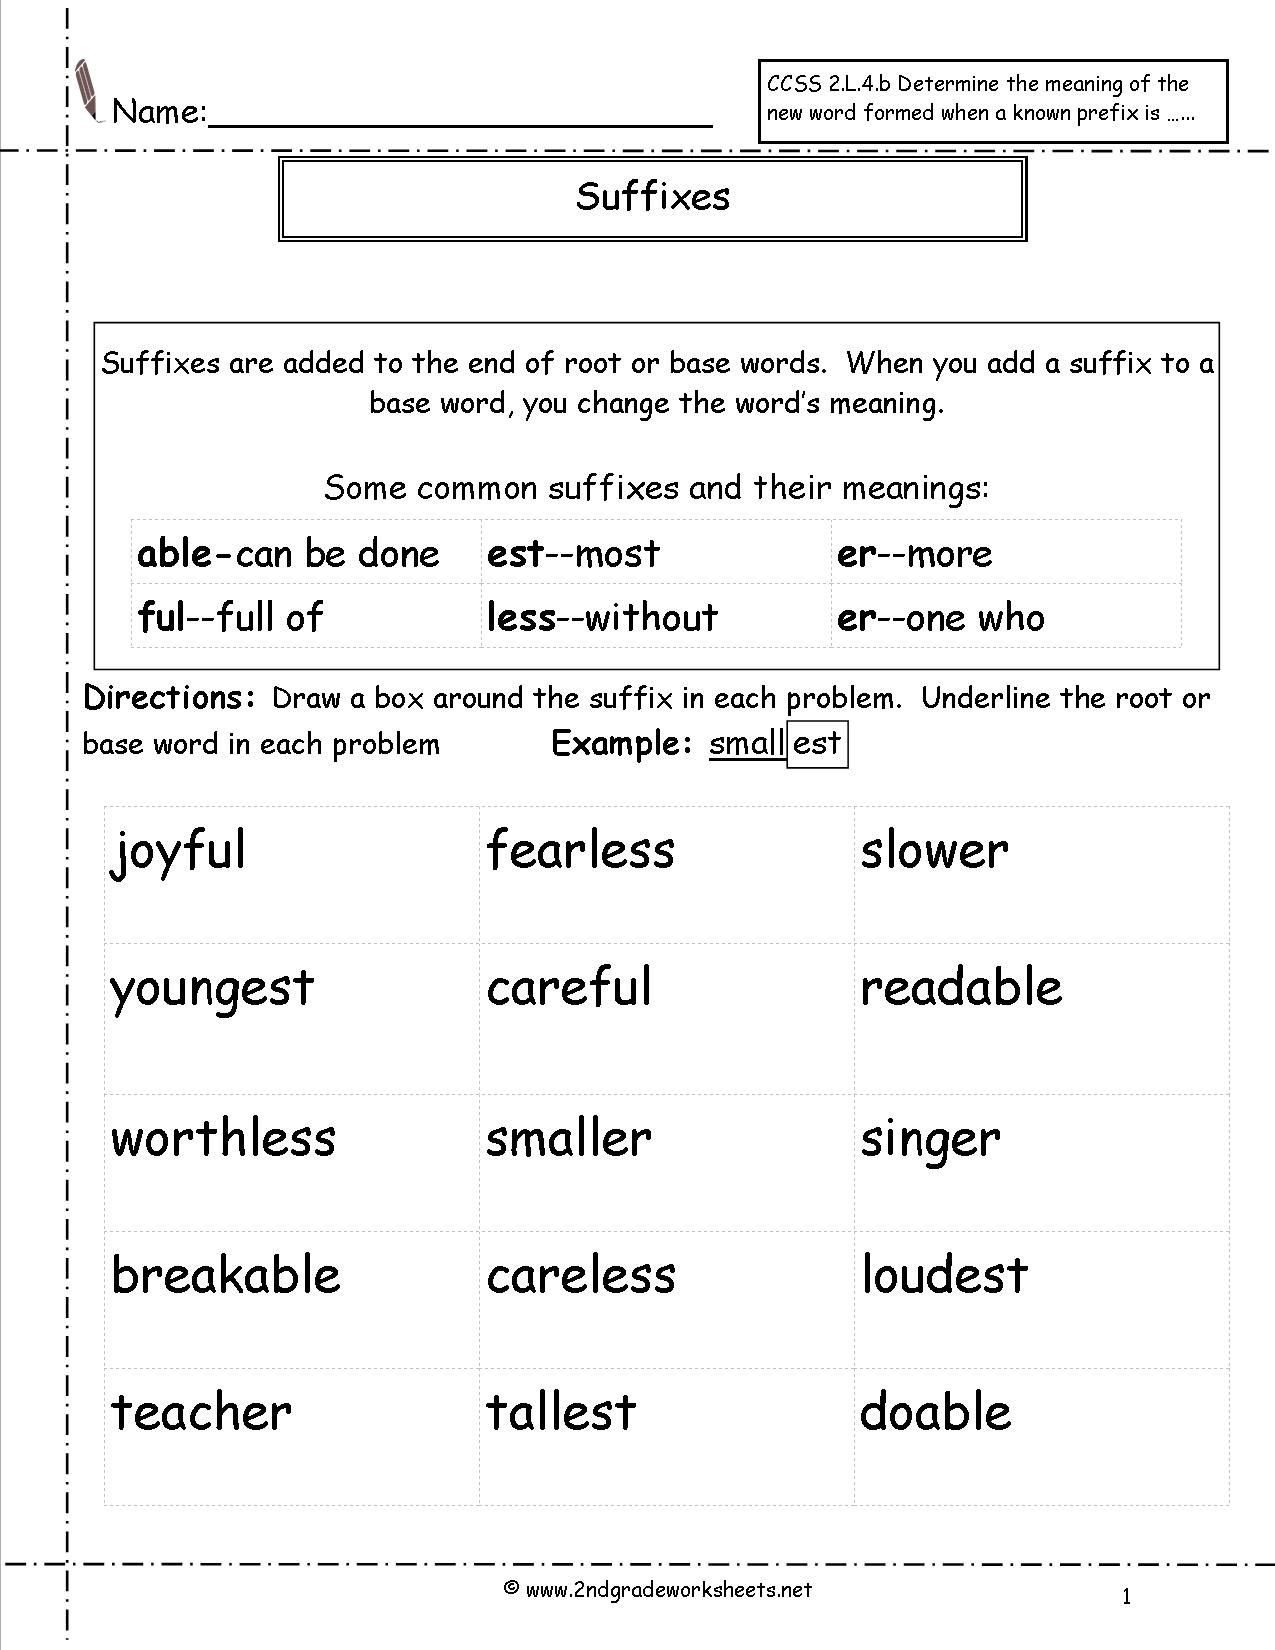 Prefix Worksheets 4th Grade 41 Innovative Prefix Worksheets for You